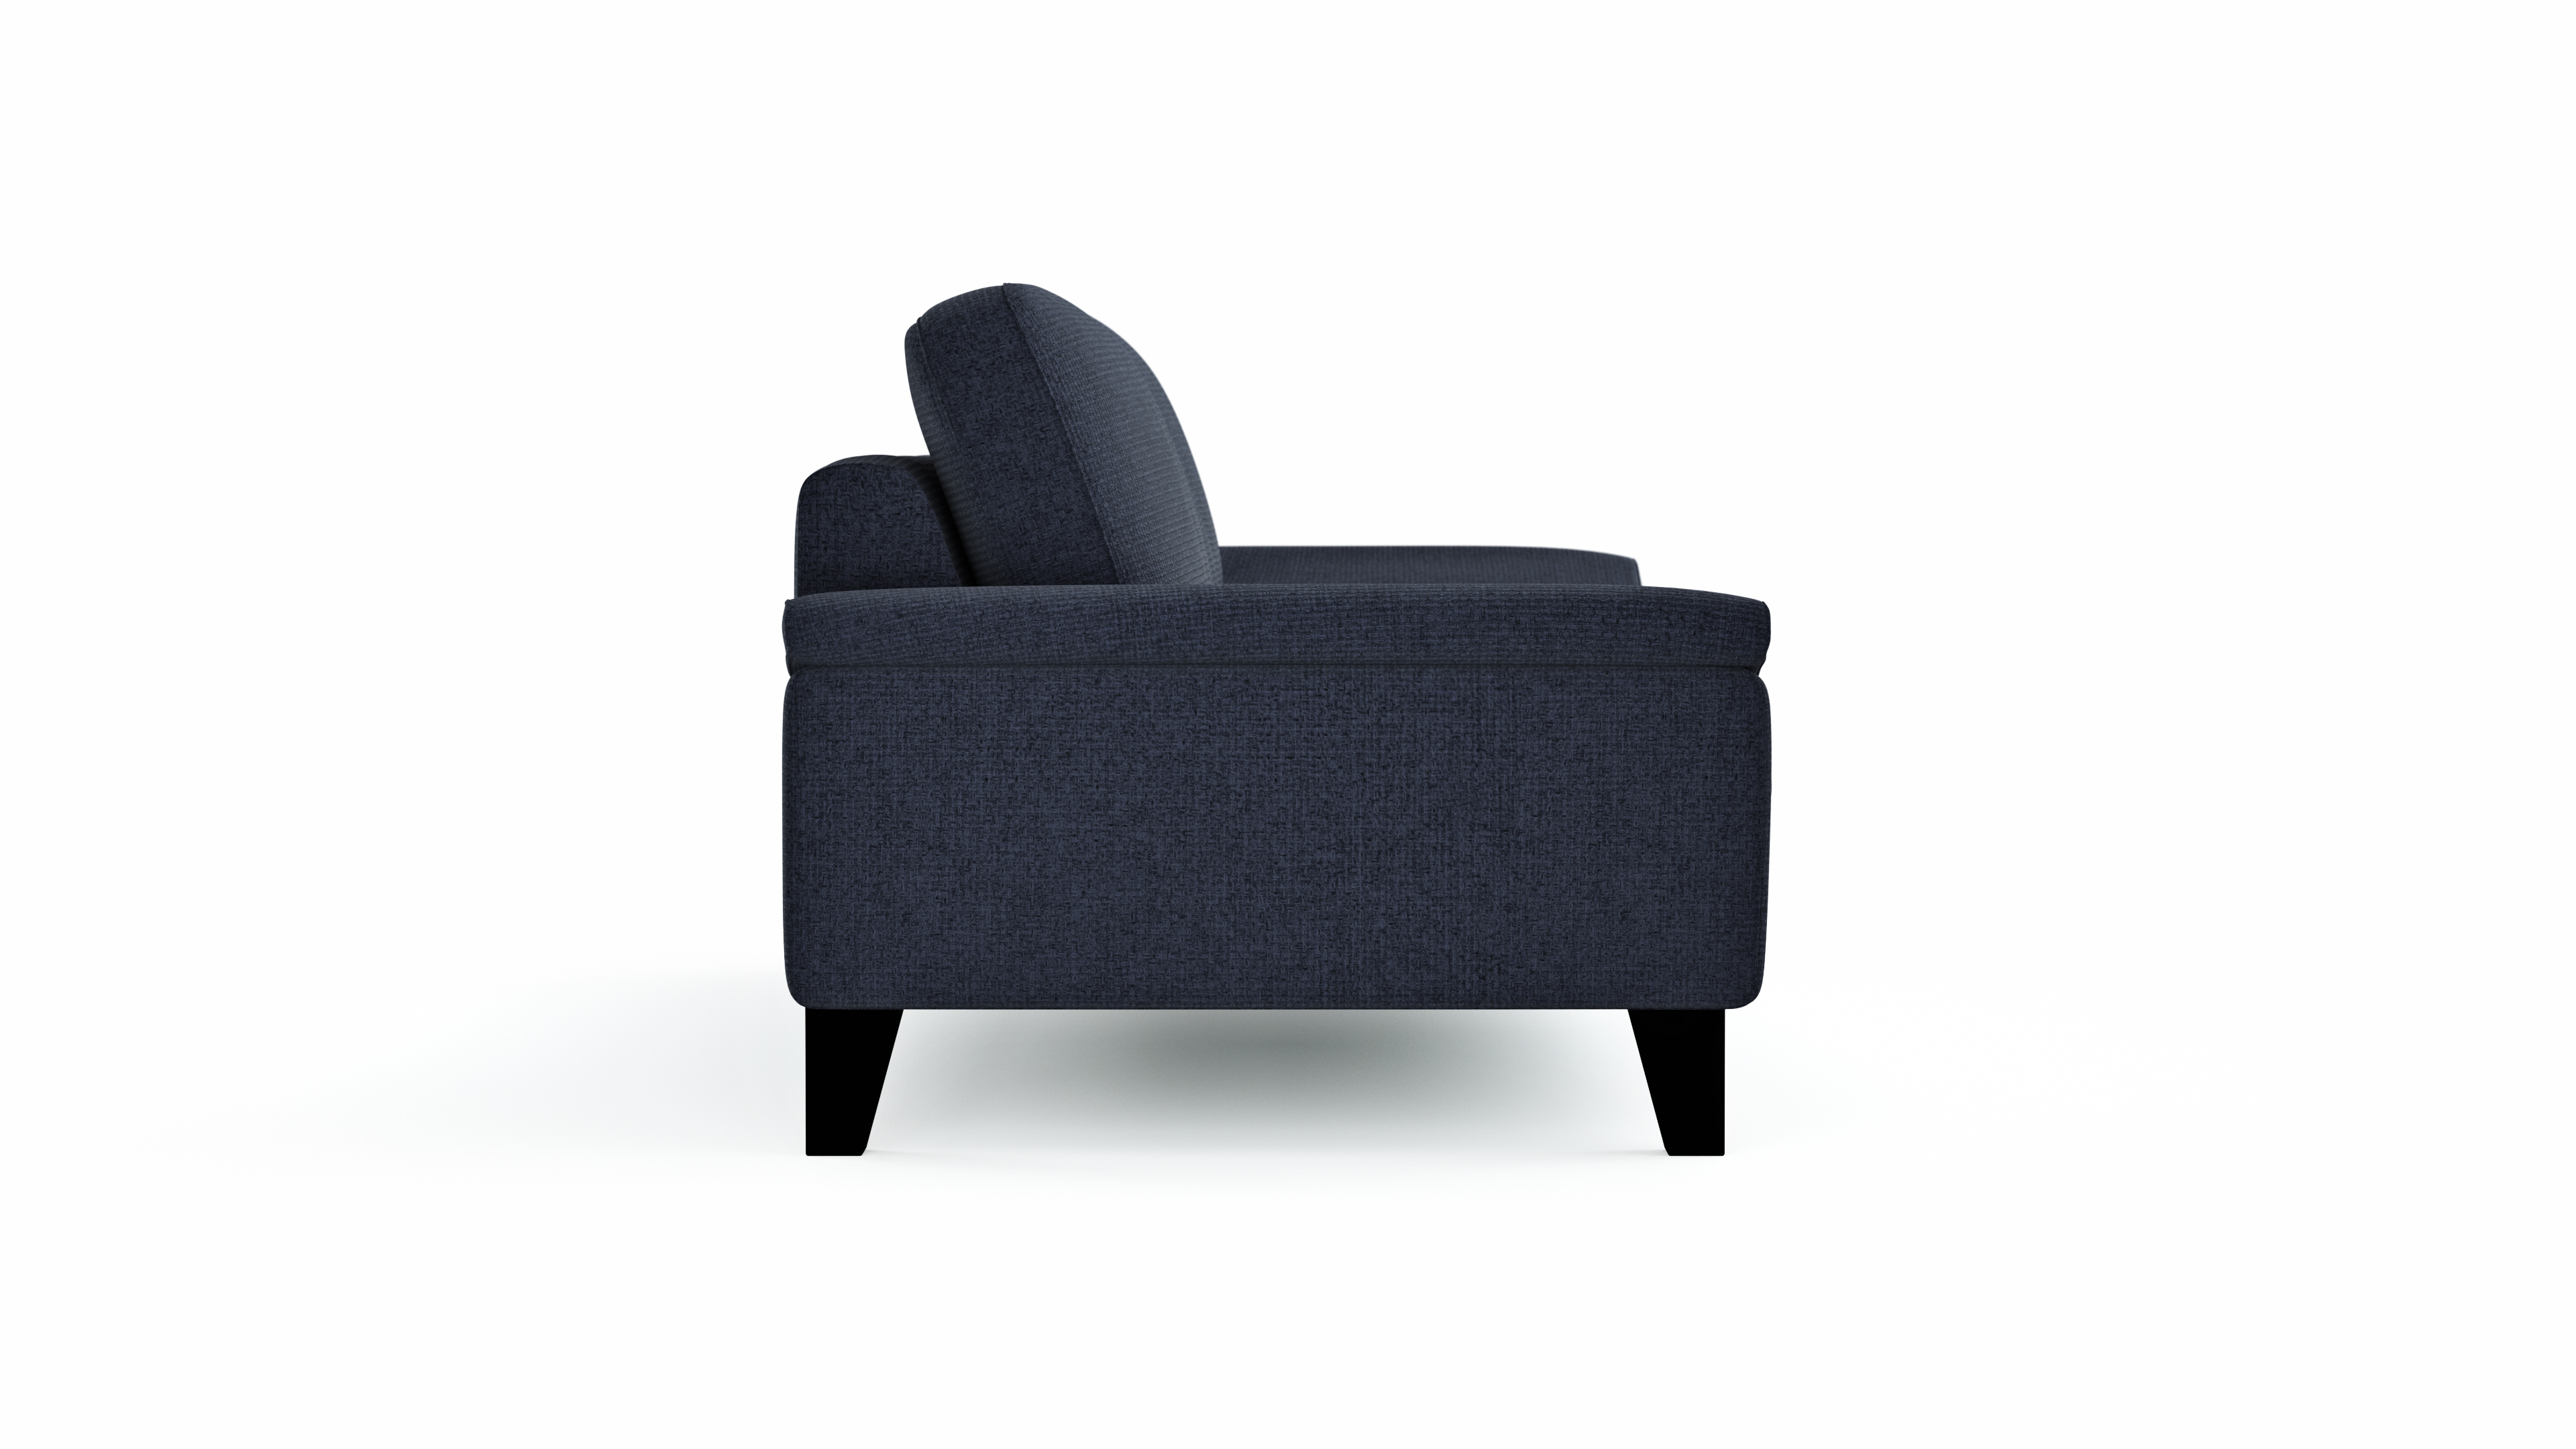 Global Family 3 Sitzer Sofa Oviedo freisteller 1 102294 | Homepoet